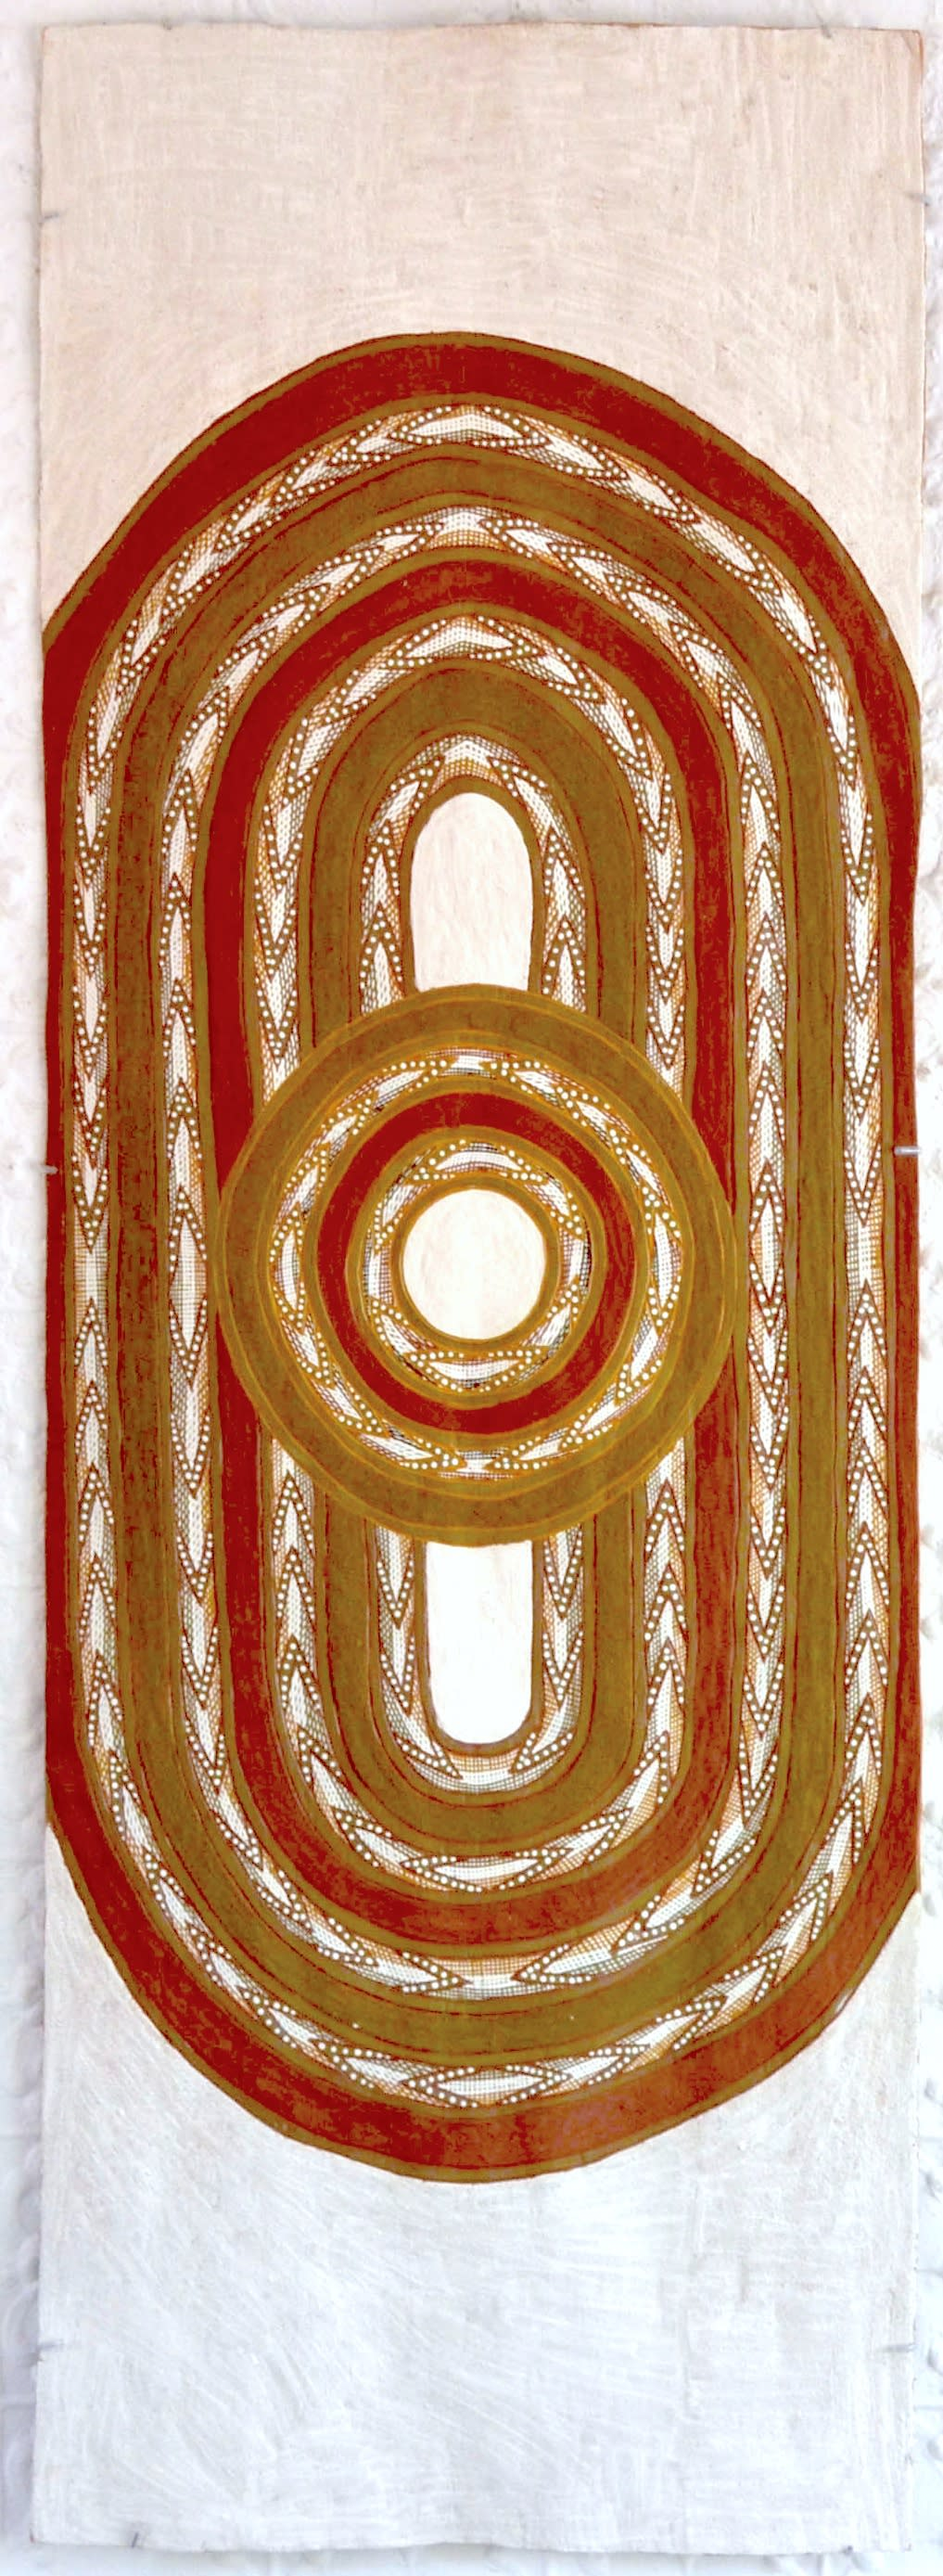 Ralwurrandji Wanambi Bamurrungu incised bark with sand and earth pigments 184 x 65 cm